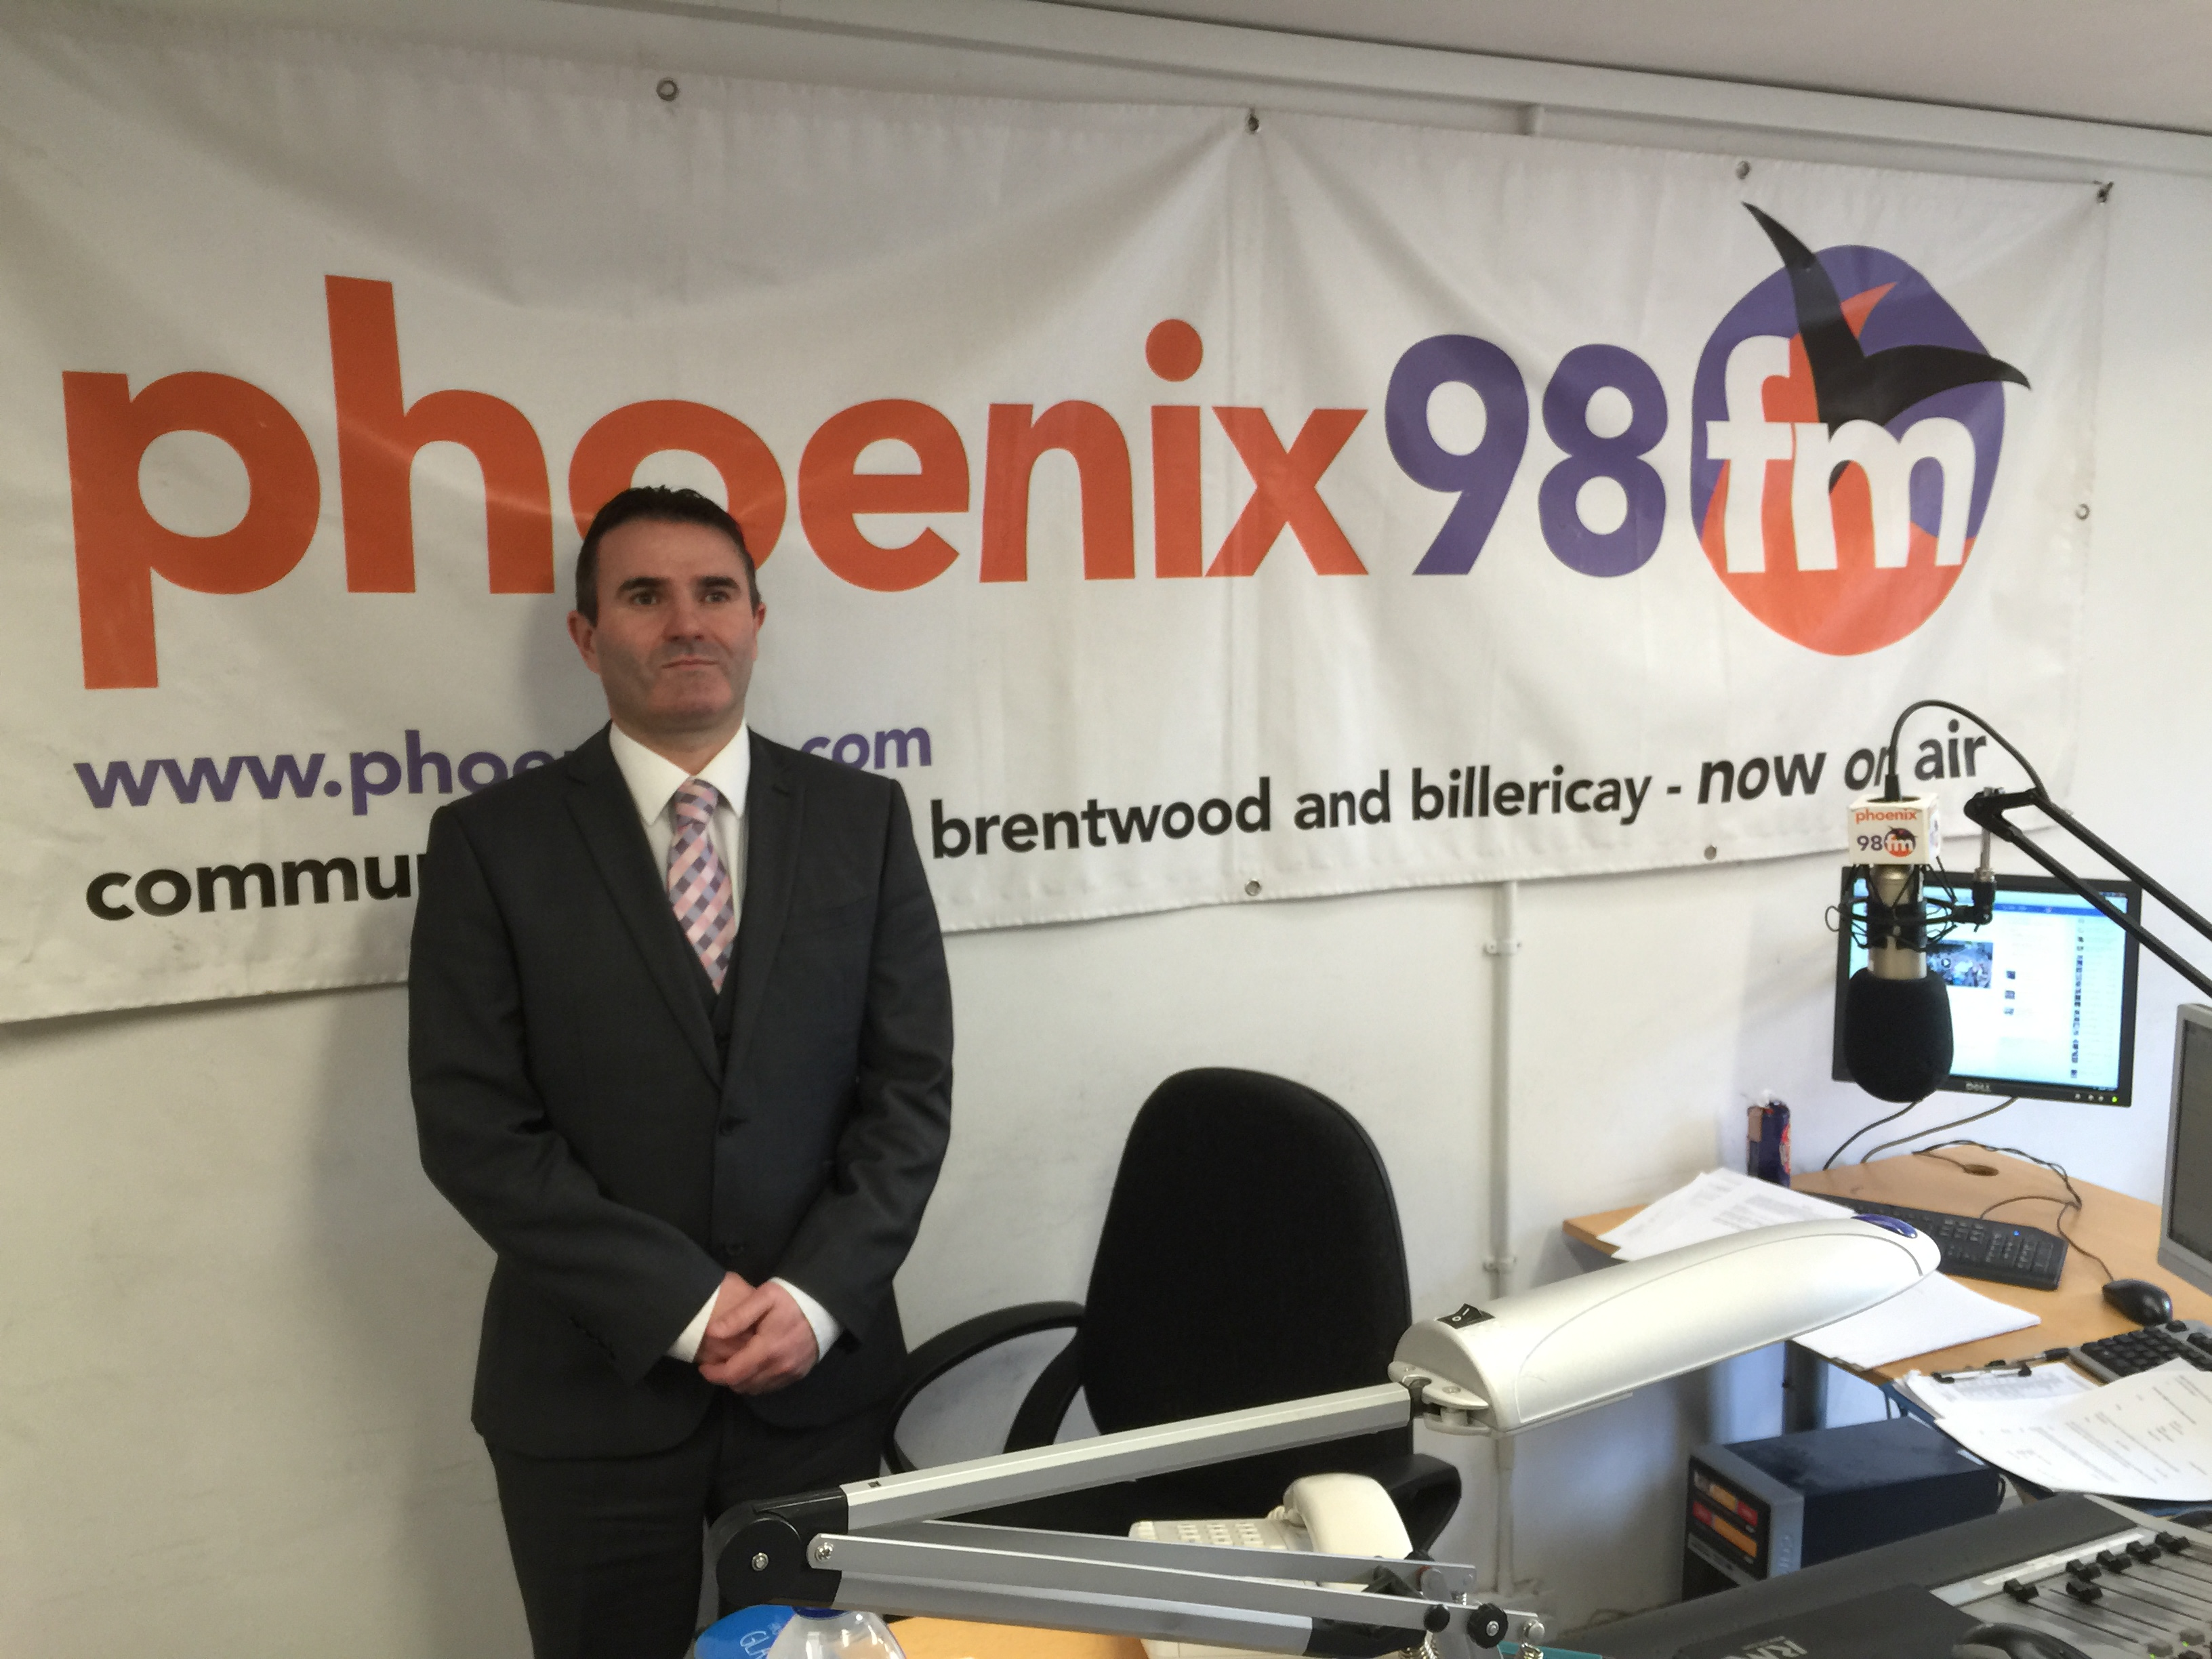 Looking after your loved ones - Phoenix FM